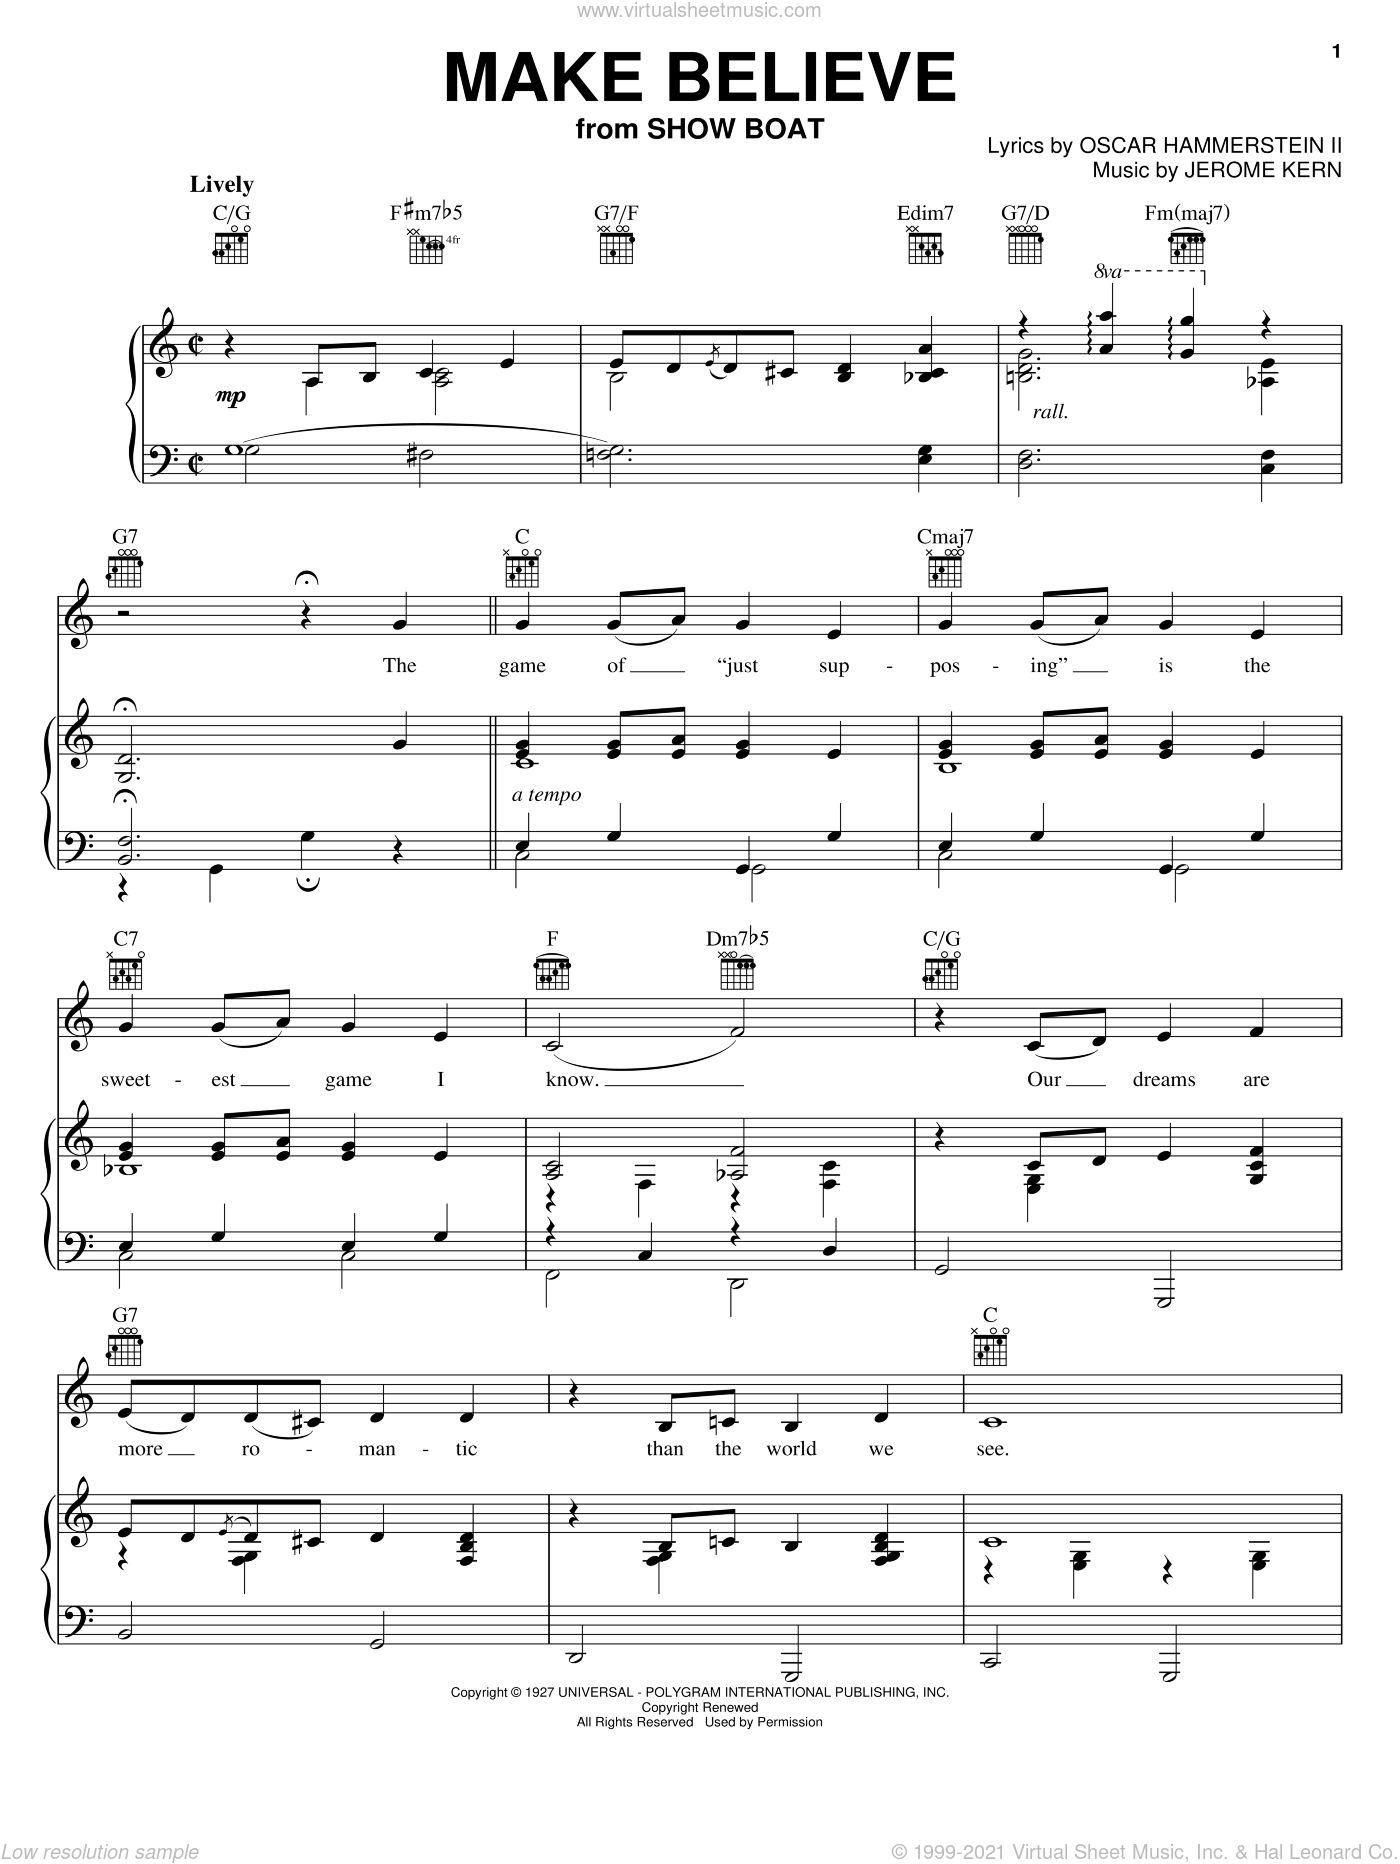 Make Believe sheet music for voice, piano or guitar by Jerome Kern, Benny Goodman, Bing Crosby, Peggy Lee, Show Boat (Musical) and Oscar II Hammerstein, intermediate skill level